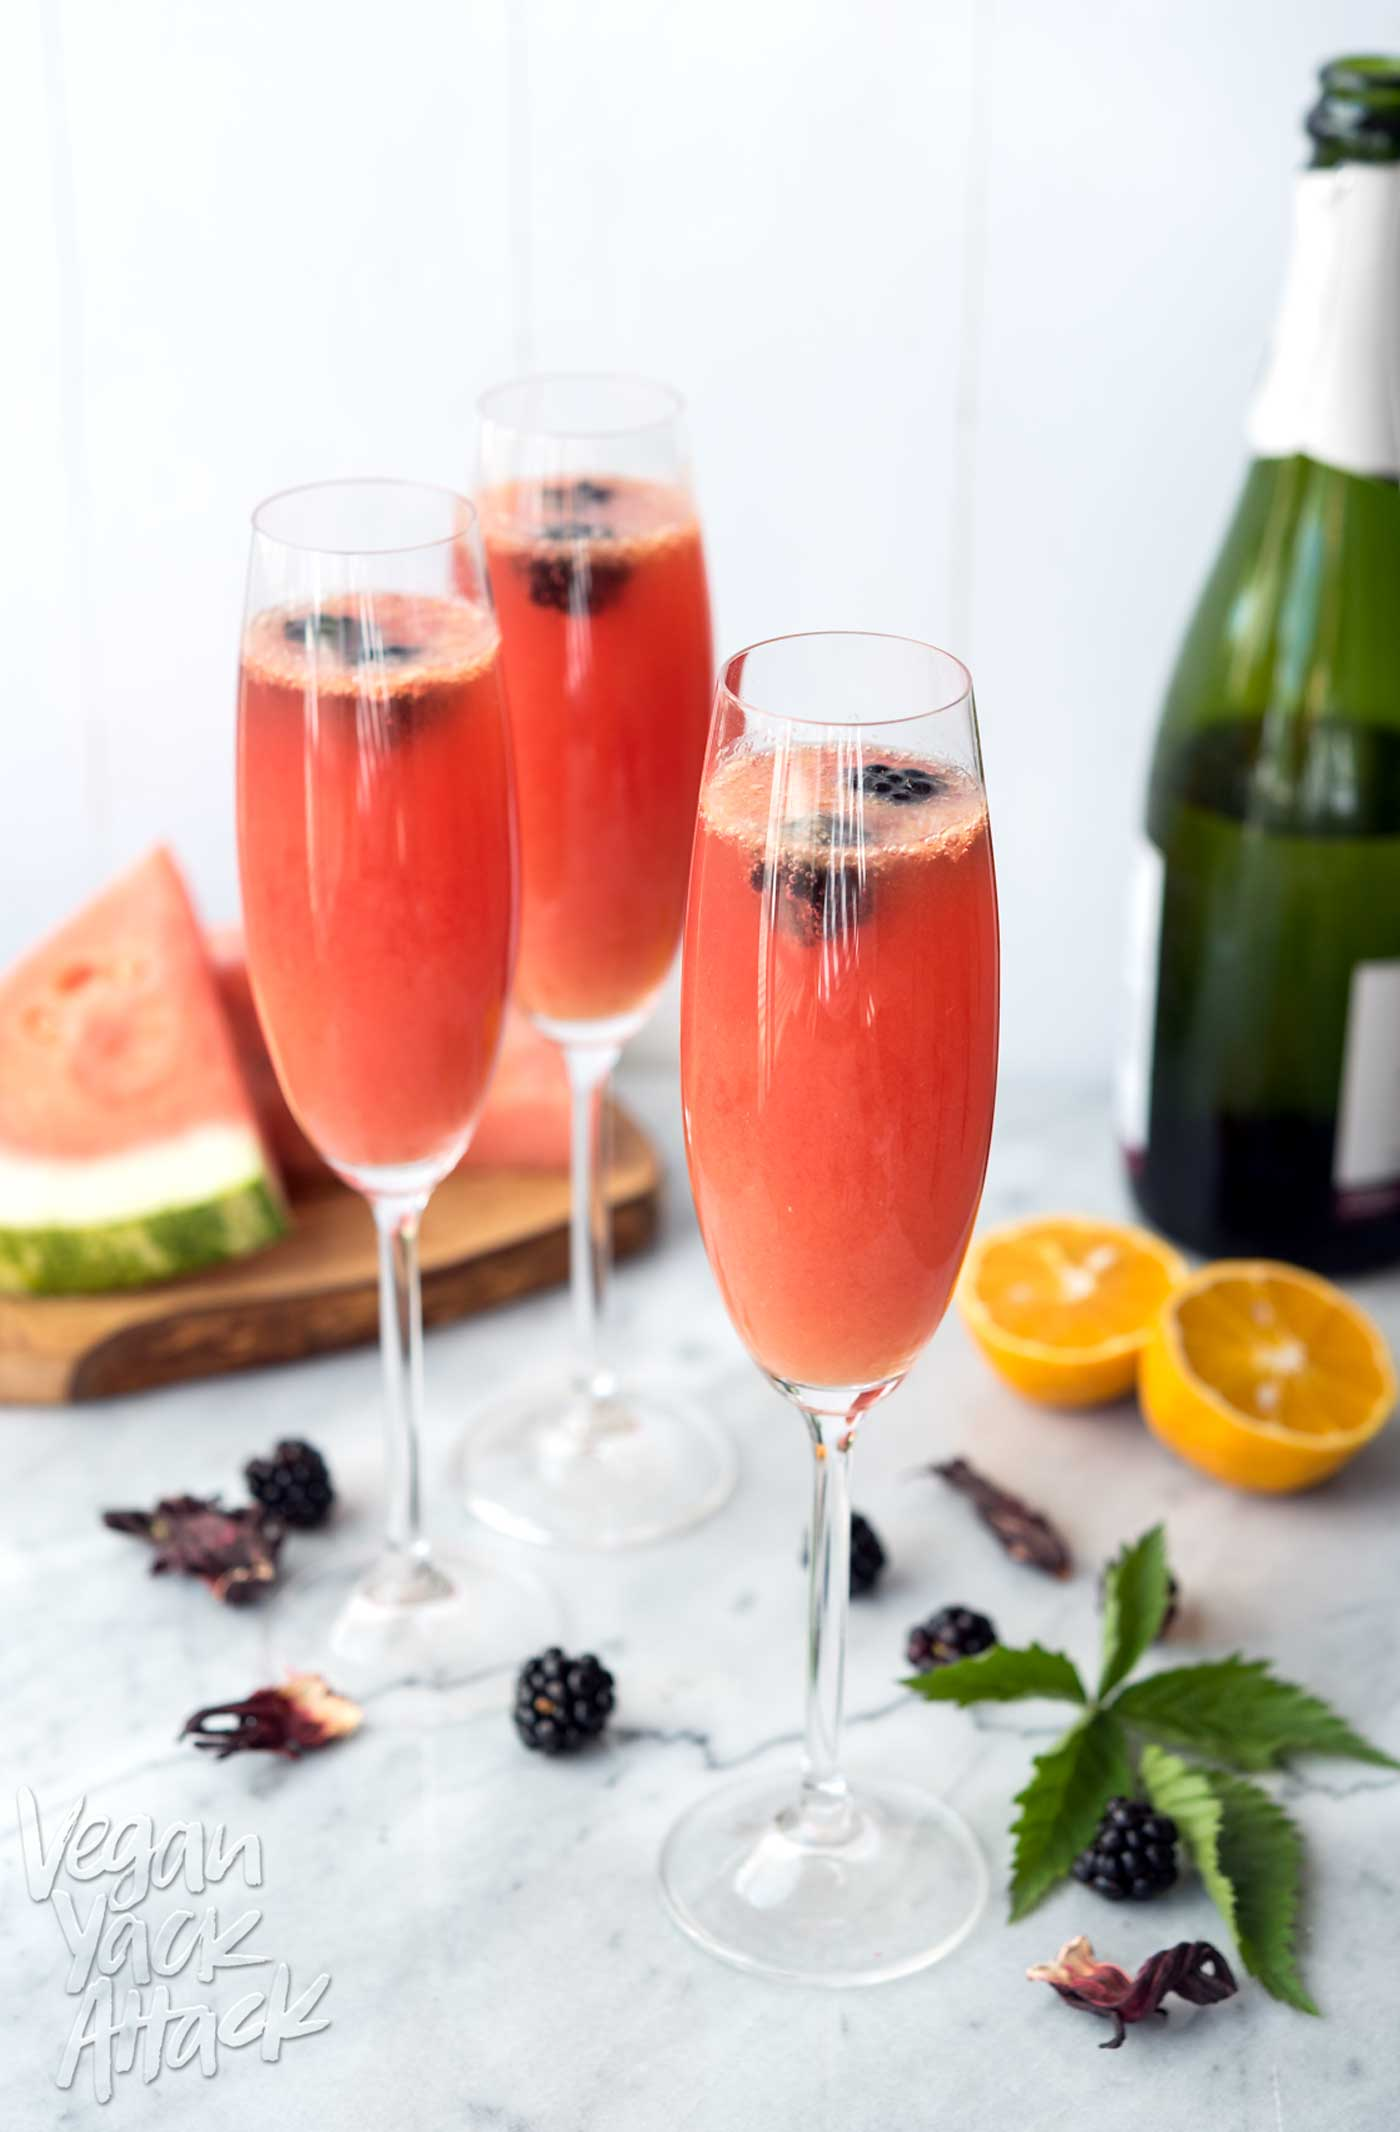 Refreshing watermelon, tart hibiscus tea, OJ and champagne make for the perfect, summer brunch beverage: Watermelon Hibiscus Mimosas! #vegan #allergenfriendly #brunch #drinks